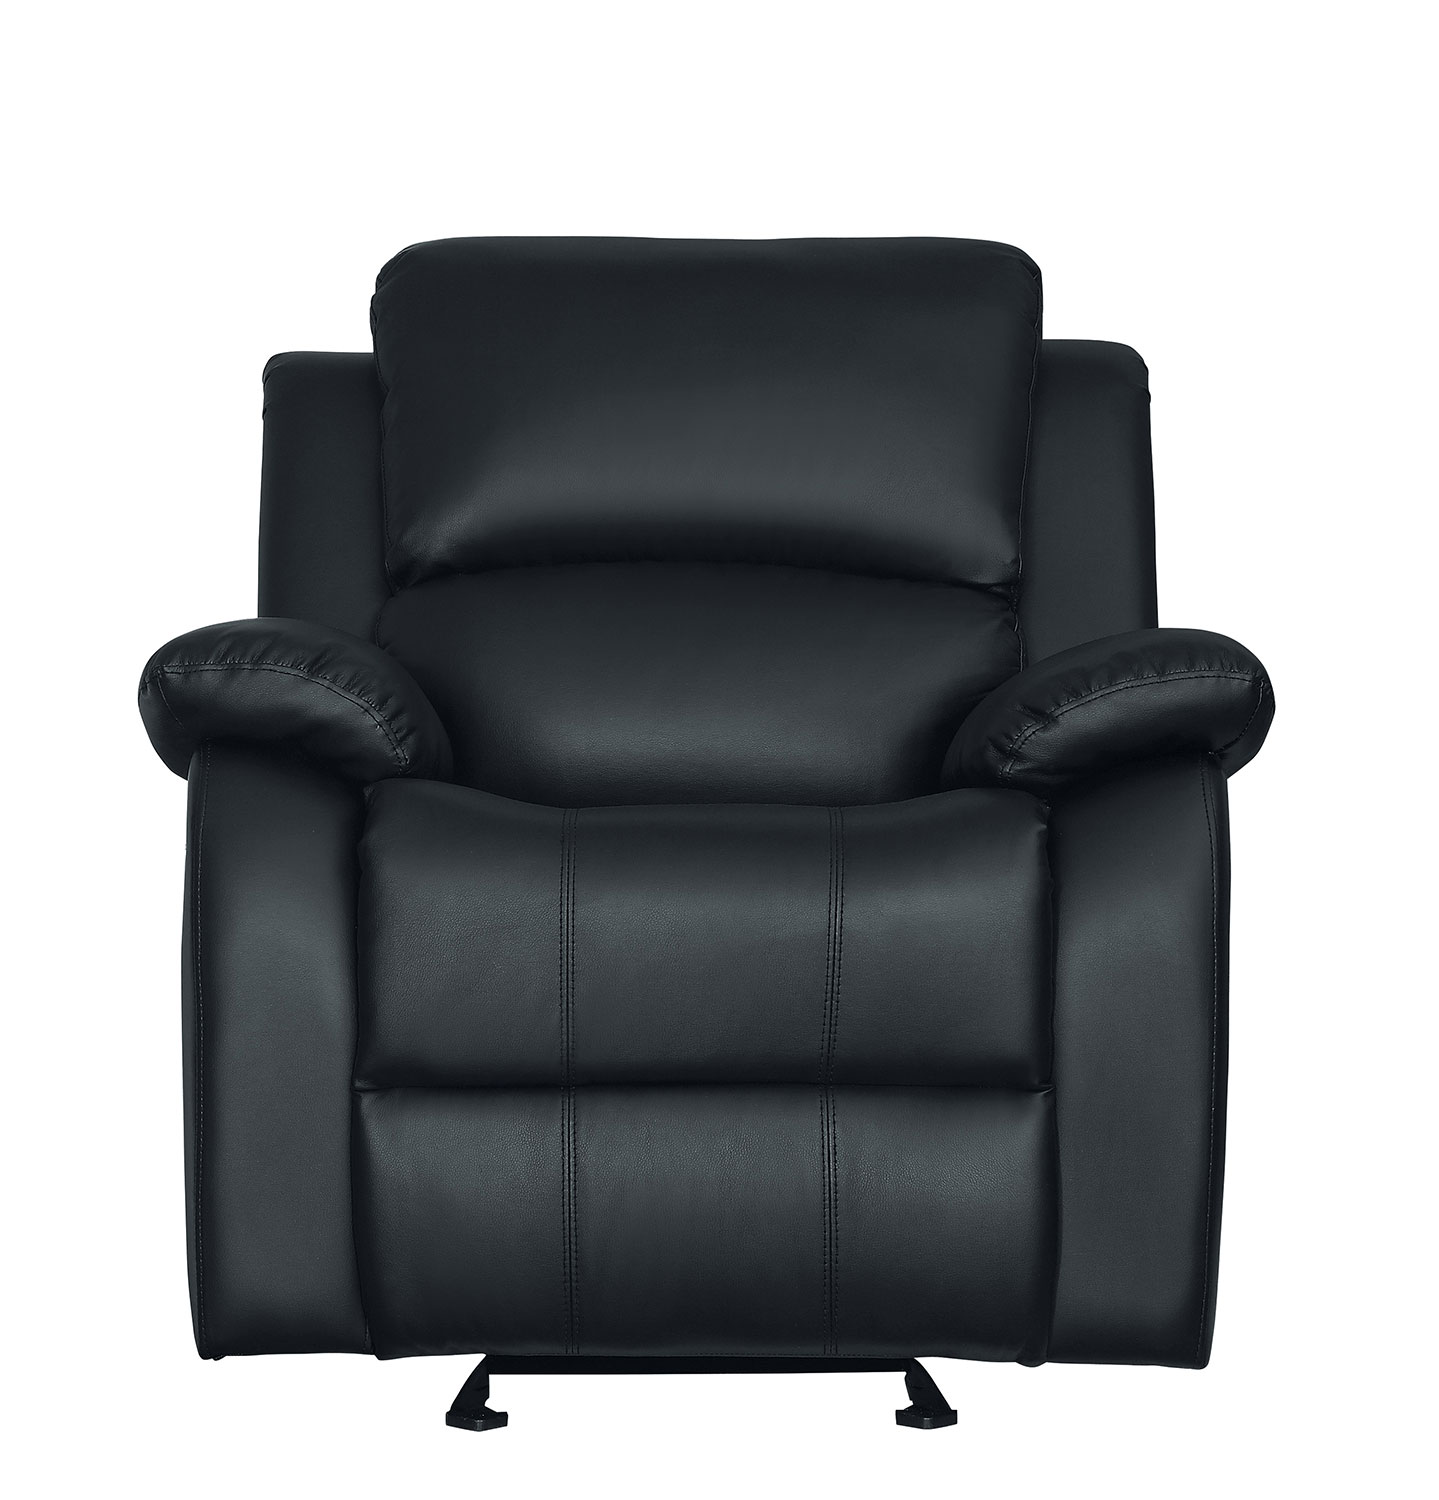 Homelegance Clarkdale Glider Reclining Chair - Black